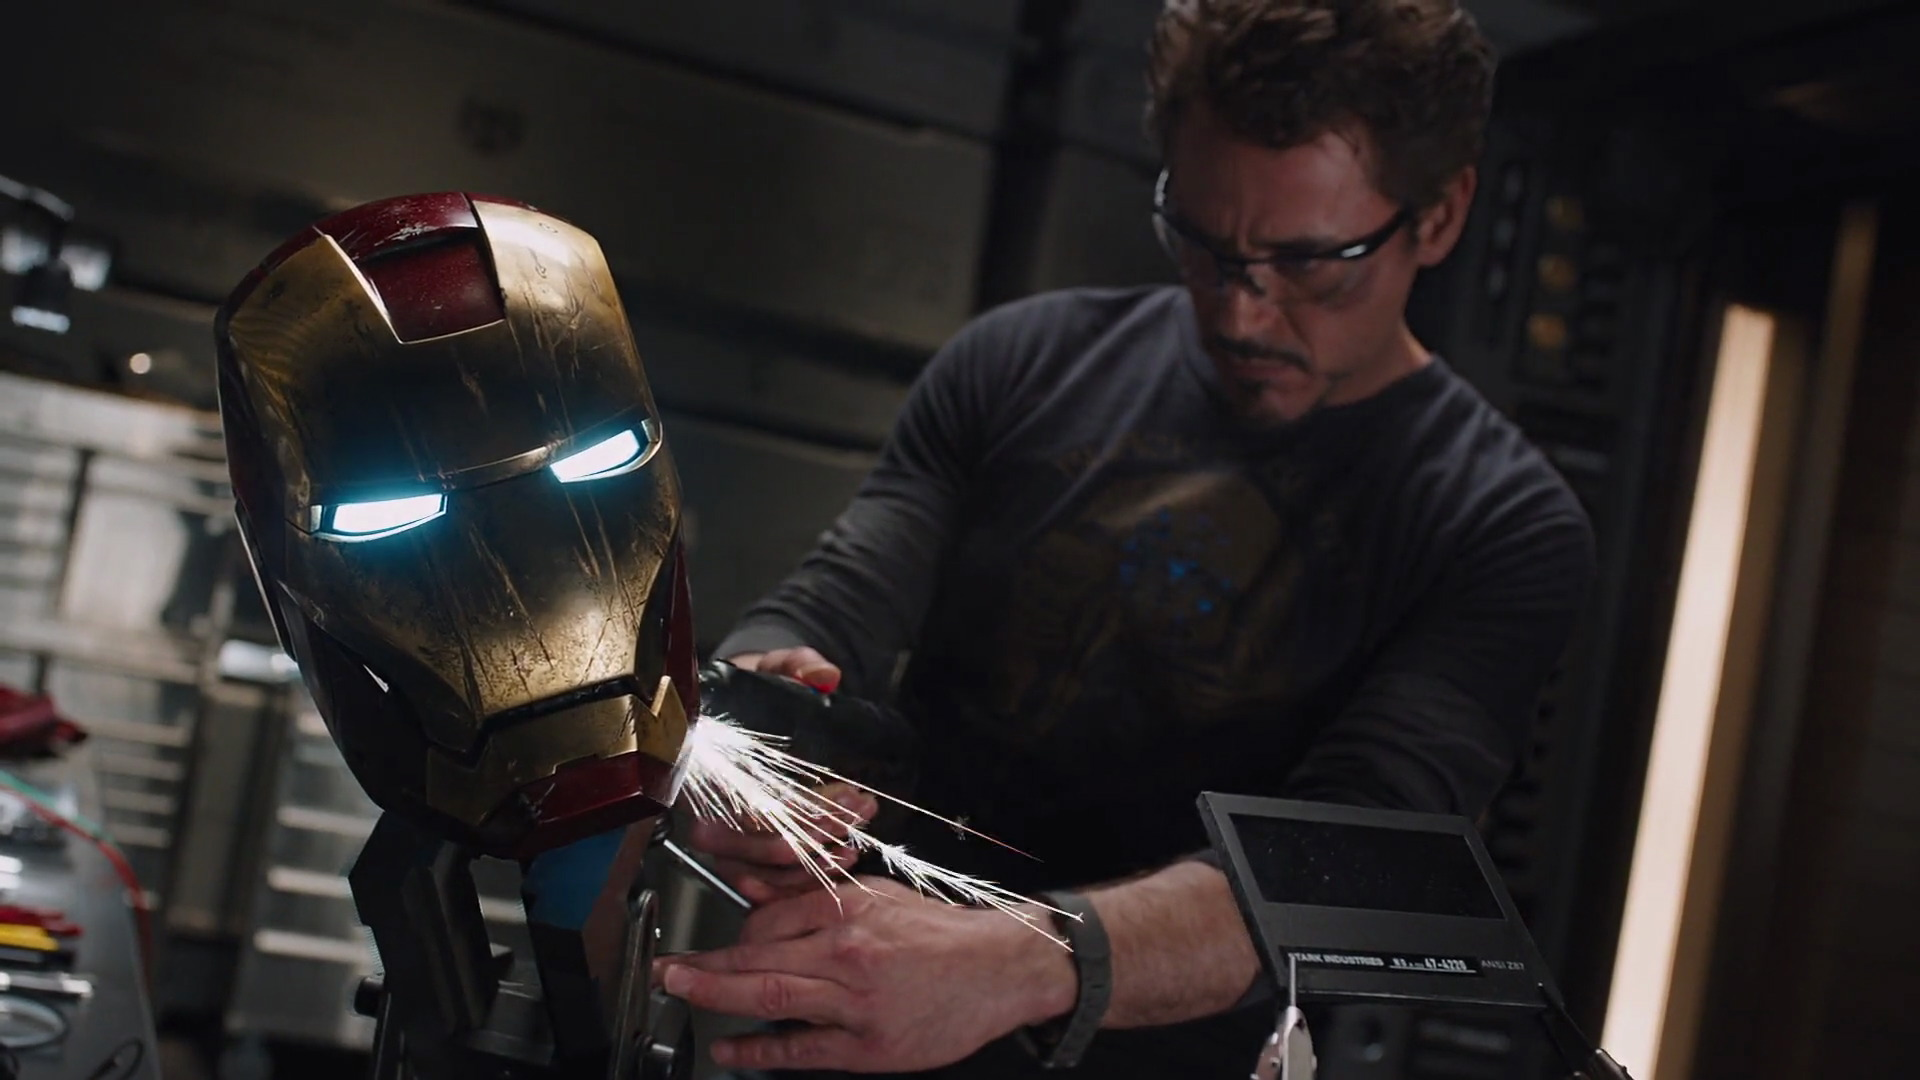 http://www.caps.media/201/2-avengers/full/avengers-movie-screencaps.com-11568.jpg